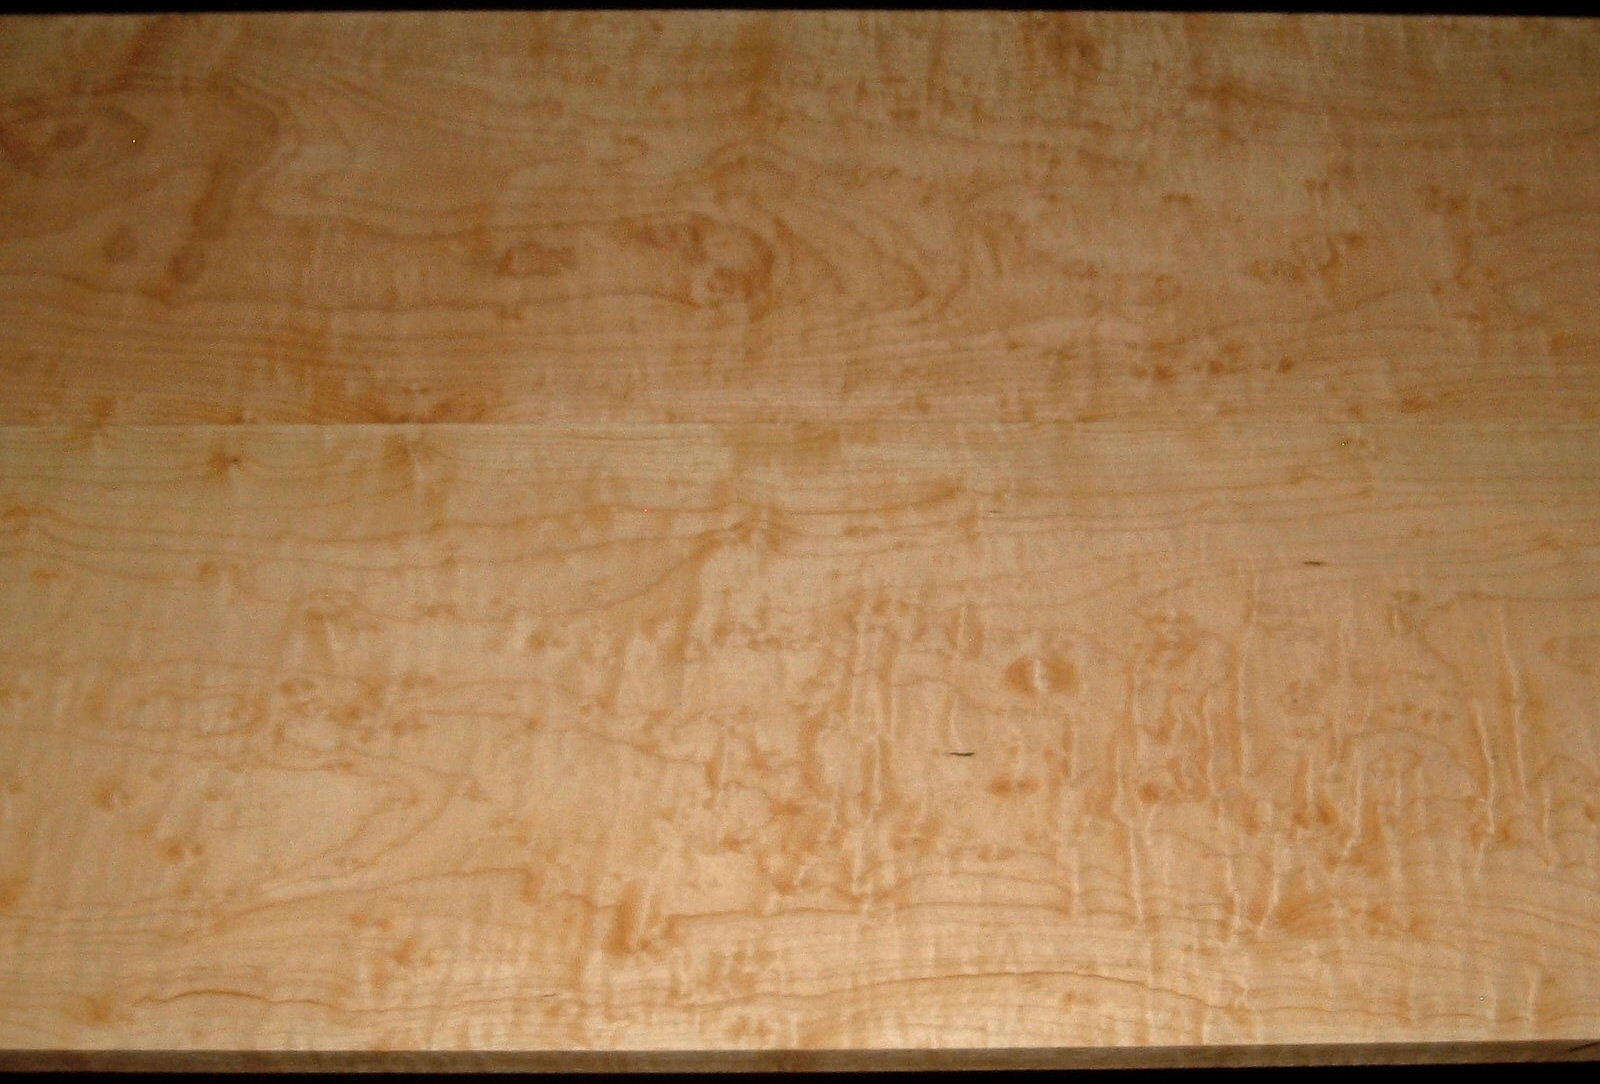 HM2001-47, 2 Bd Set, +13/16x10-1/8x45, +13/16x10-7/8x45, Rare Find! Bubbly Blistered, Curly Hard Maple